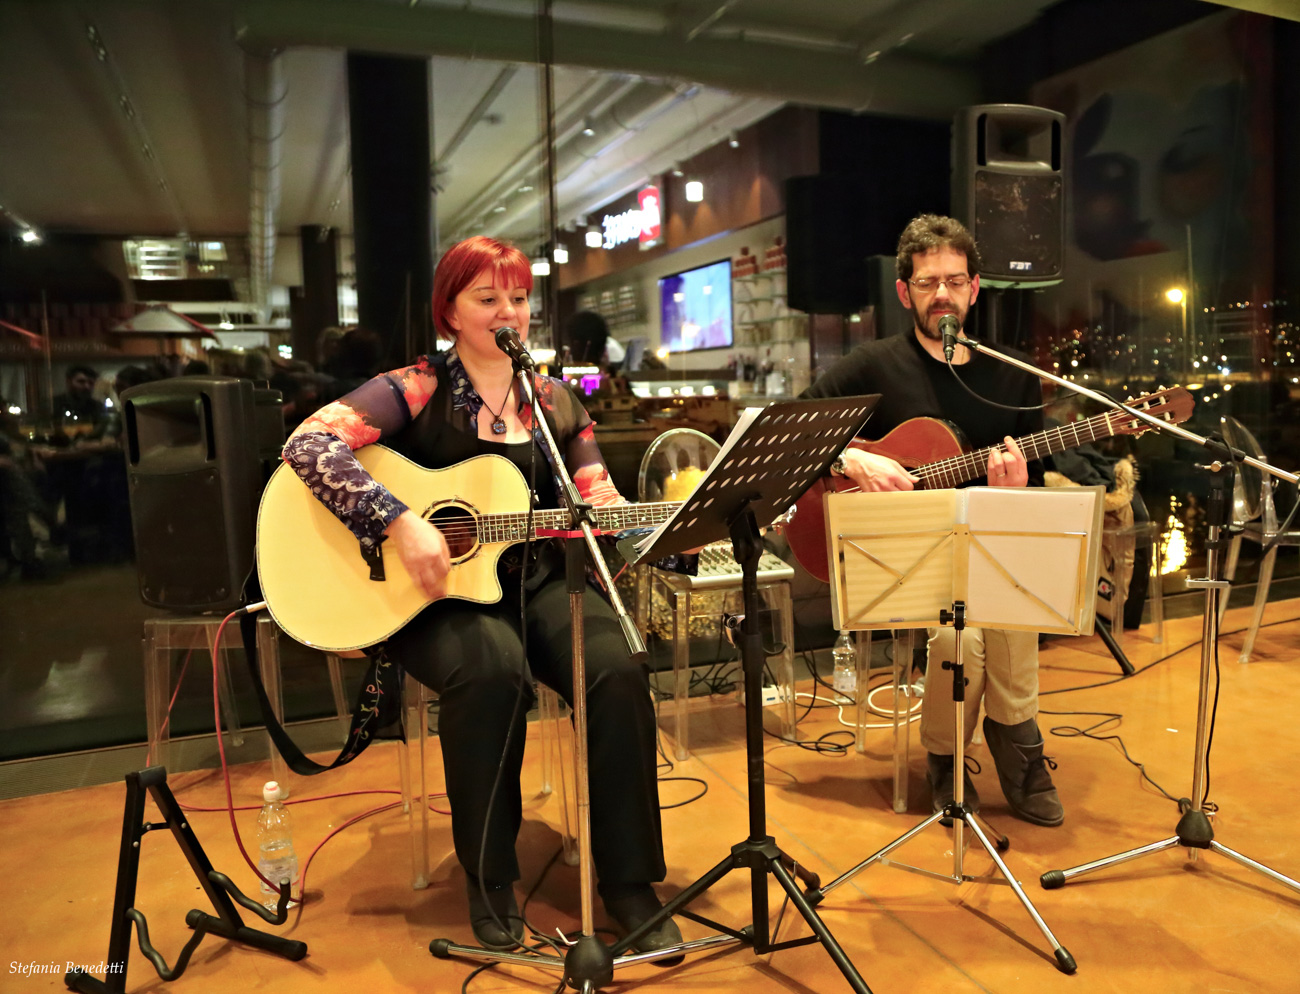 Paola Rossato – Concerto all'Eataly- Trieste 08.03.2017